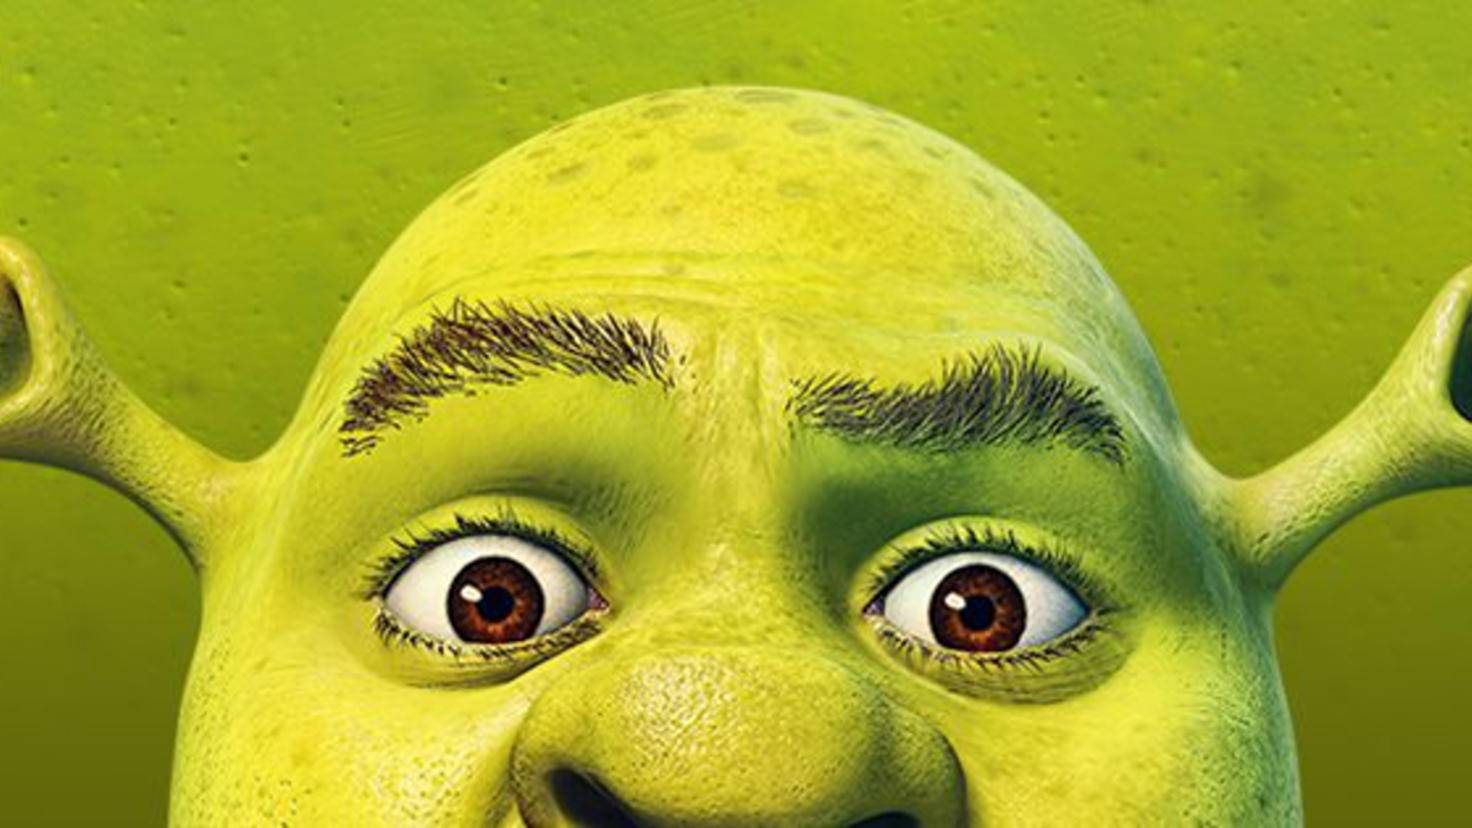 Shrek_Facebook_ShrekDEU.jpg